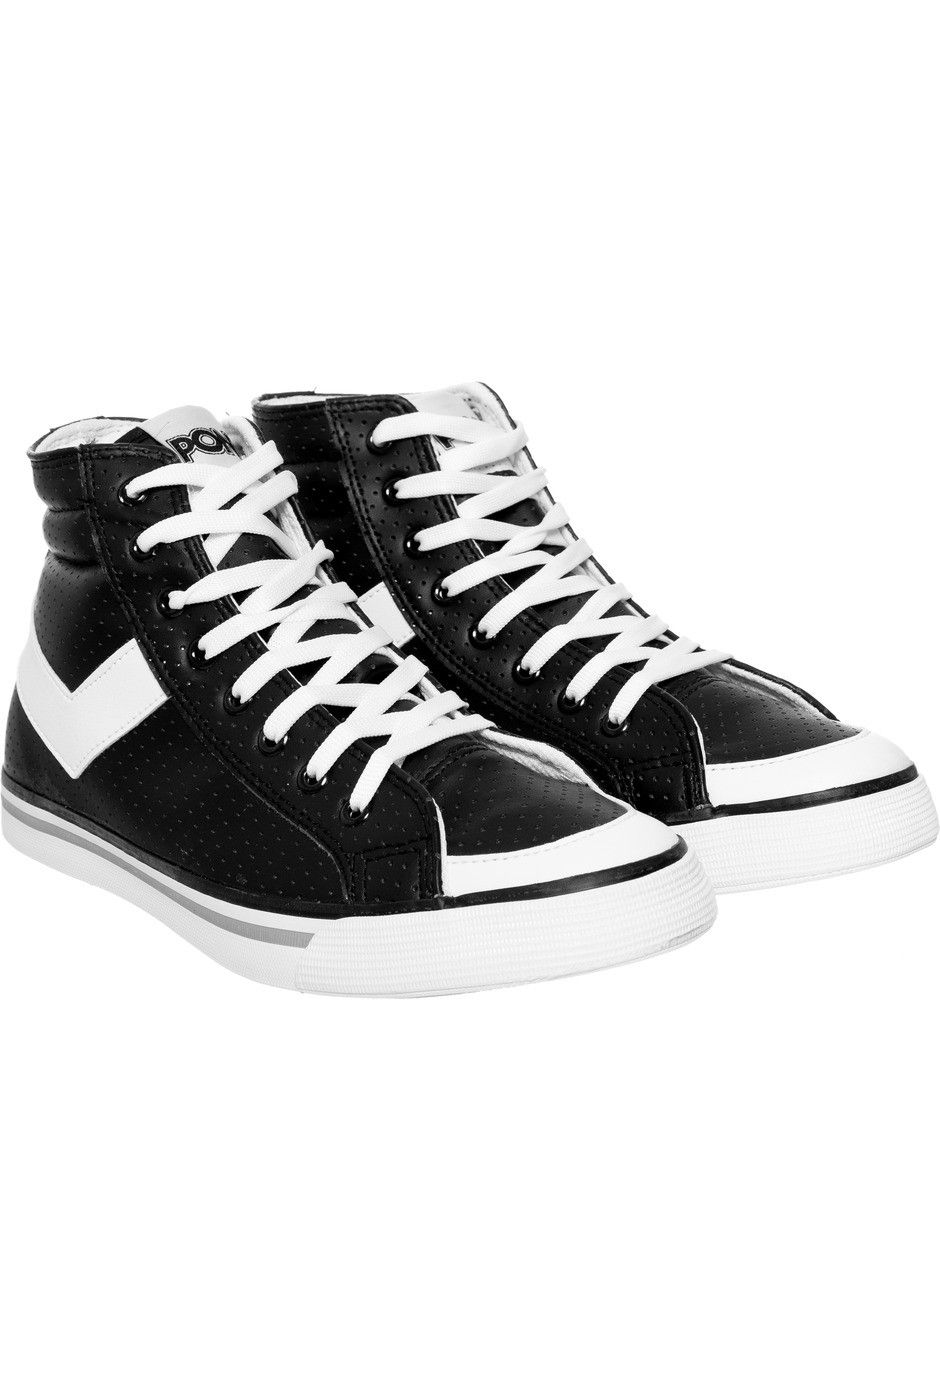 Pony - Zapatillas Piper negro 6f7f06cd4765e